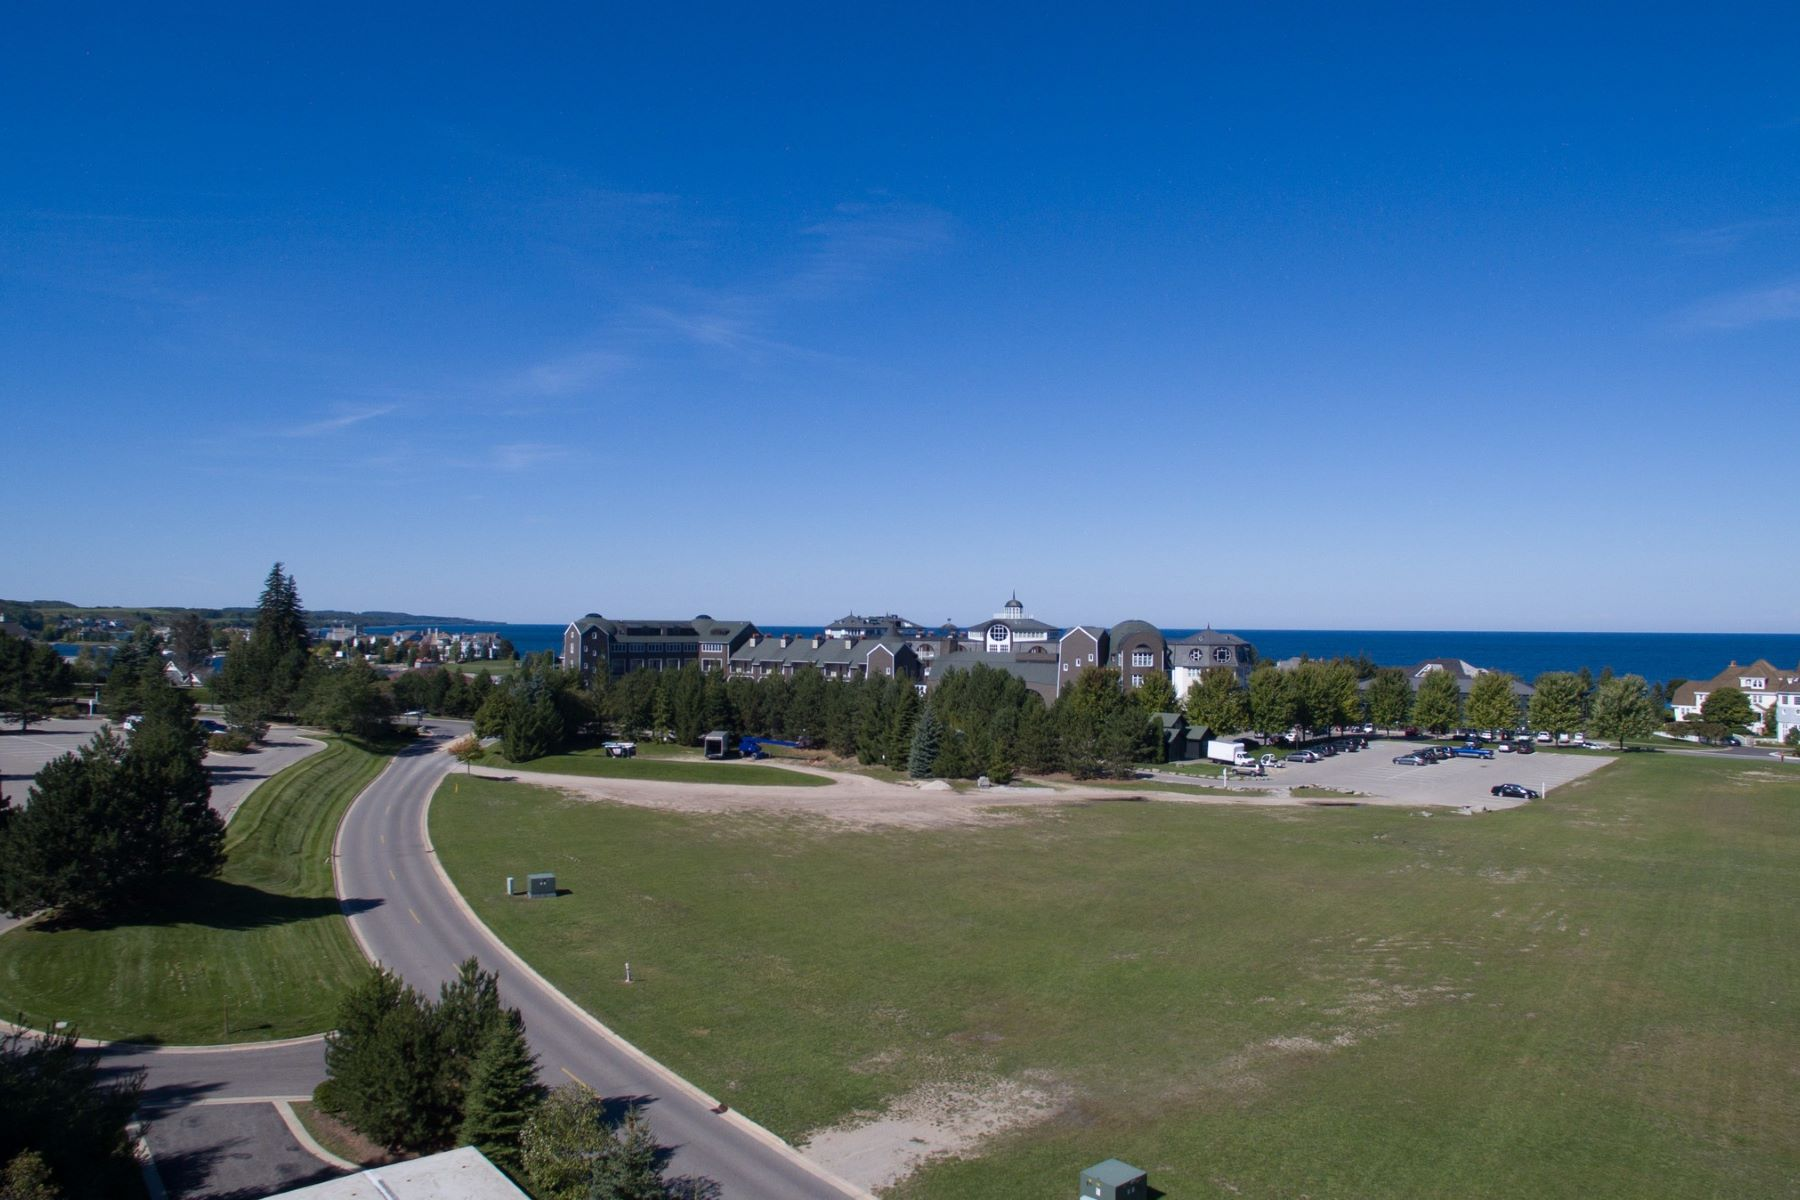 Land for Sale at Unit 11, The Ridge 3728 Cliffs Drive, Unit 11, The Ridge Bay Harbor, Michigan 49770 United States